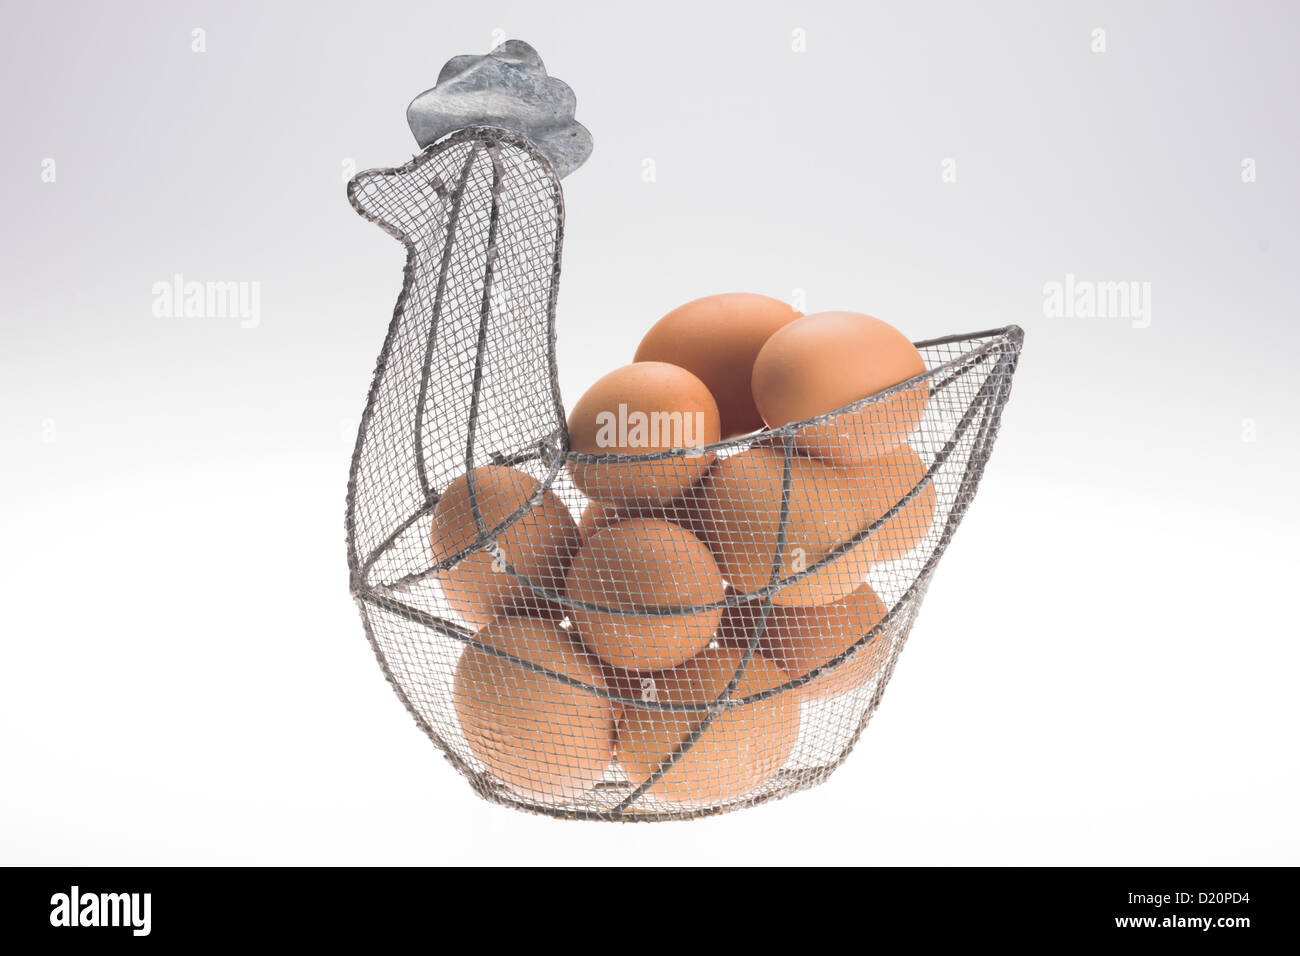 Home-produced eggs from garden hens in a wire storage basket shaped like a chicken. - Stock Image